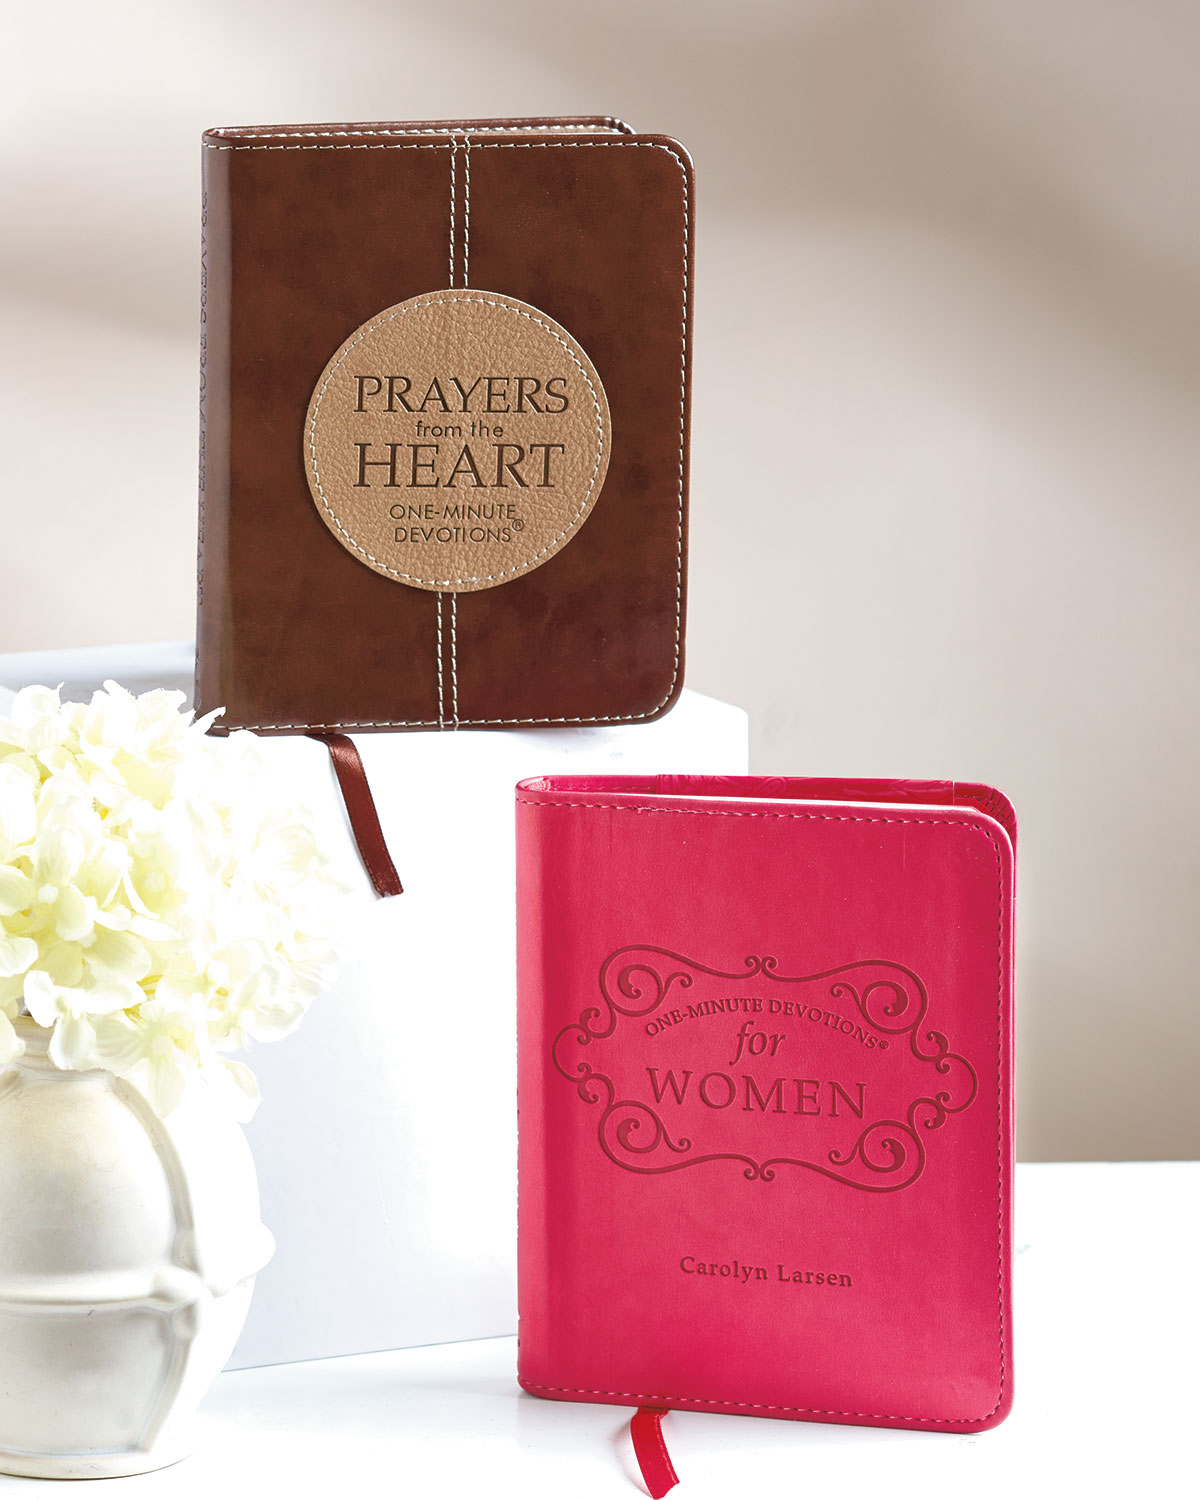 One Minute Devotions(R) Gift Books.